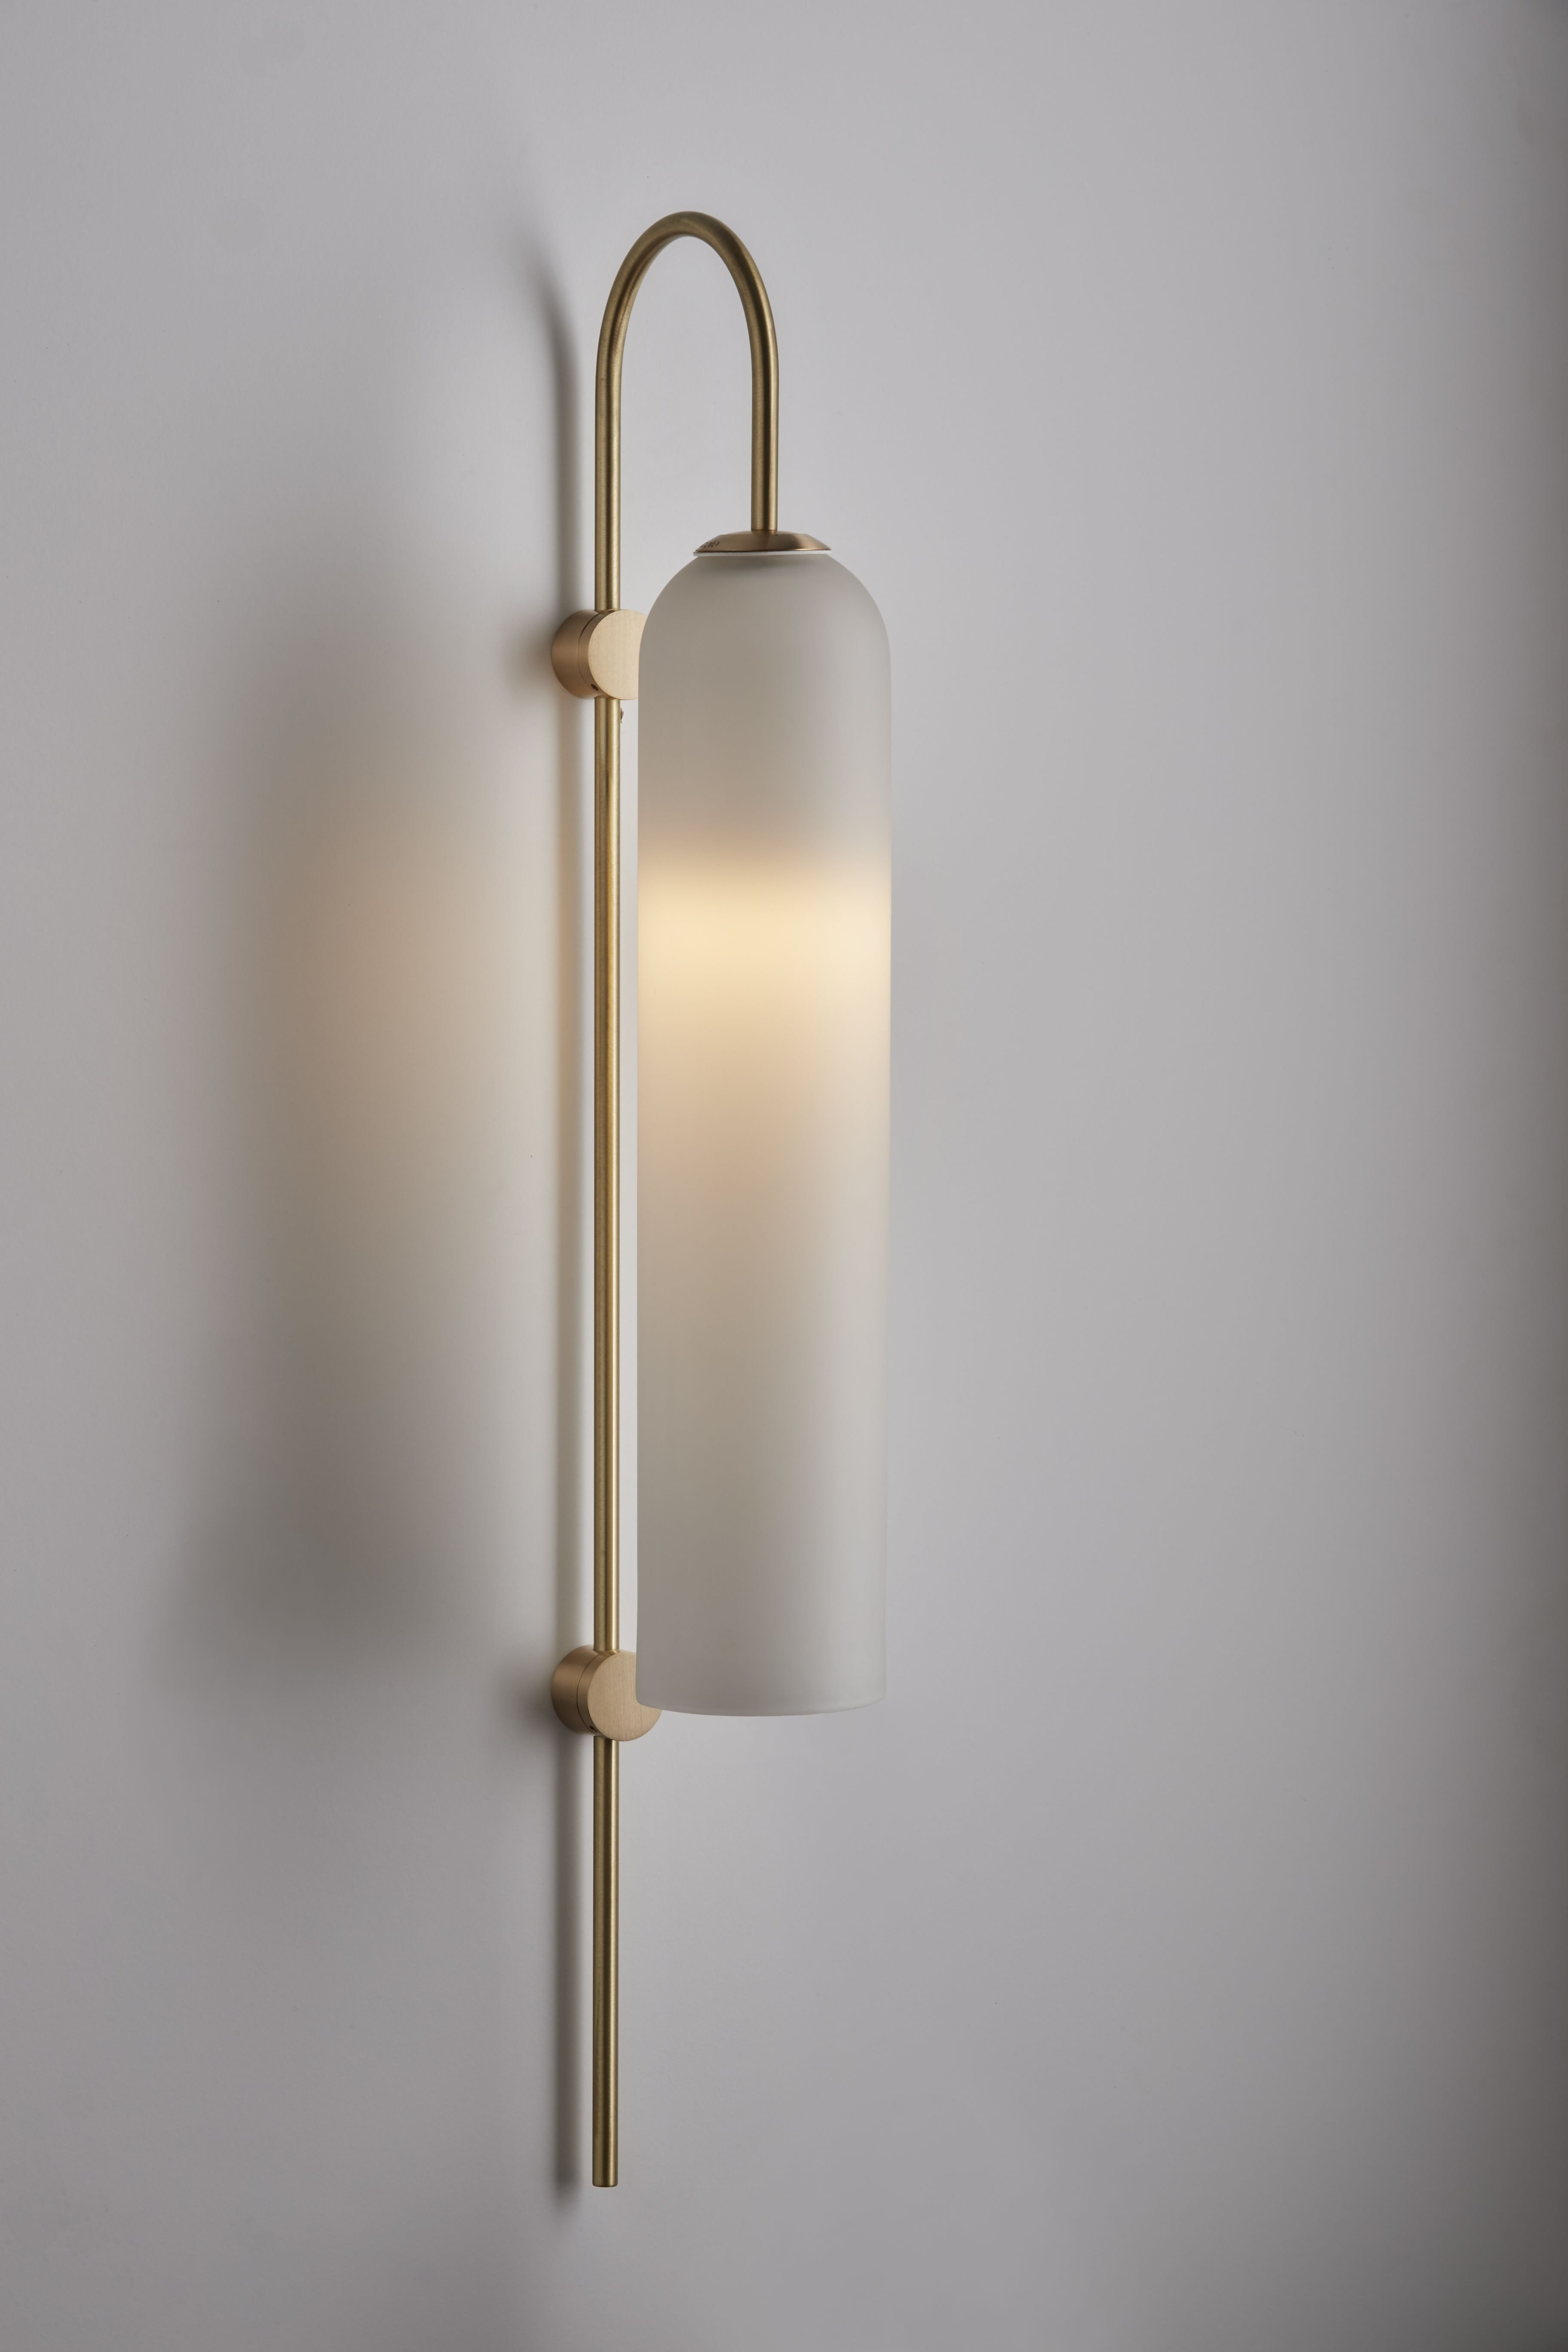 Bedroom Reading Light Wall Mounted Lovely Articolo Float Wall Sconce Brass Rod and Fitting with Snow